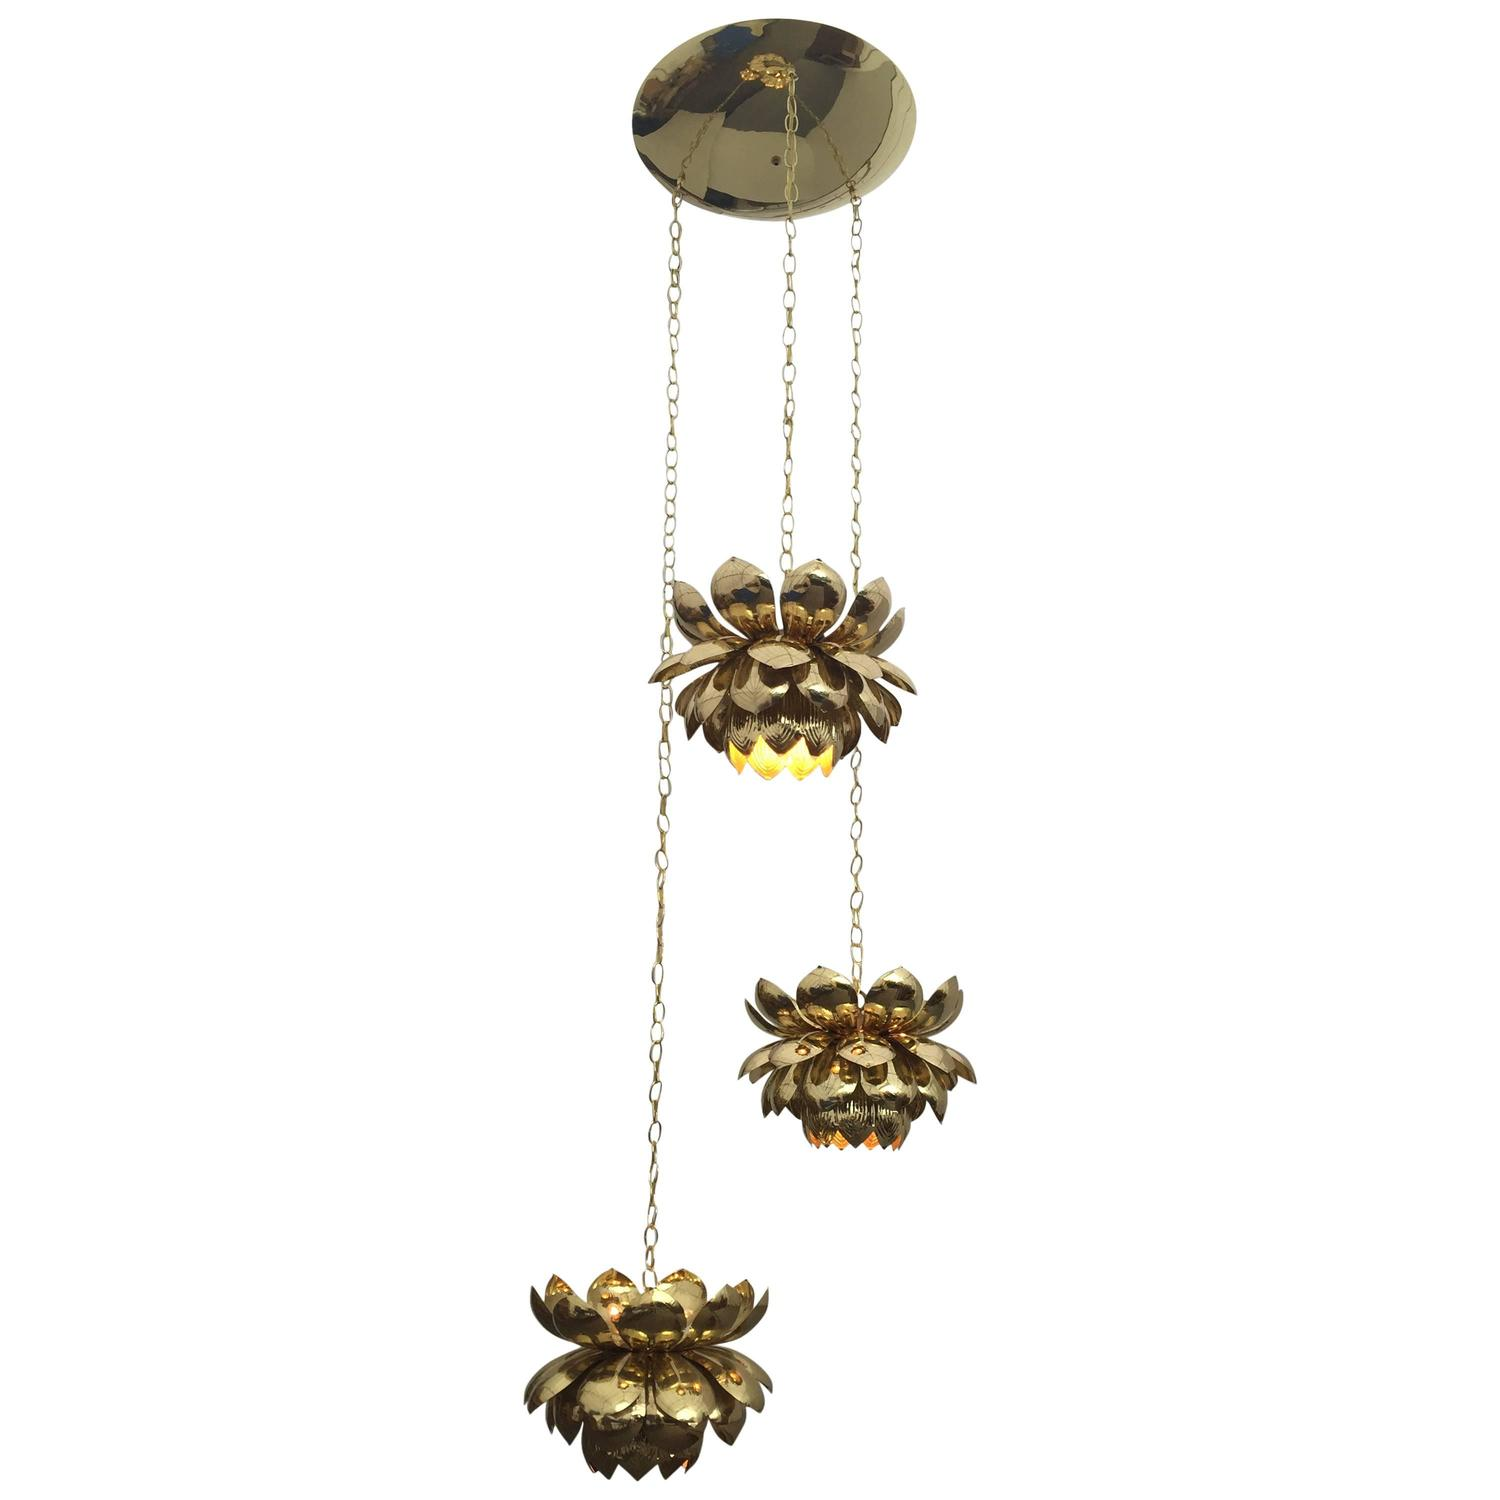 Massive feldman brass chandelier with large lotus pendants for sale massive feldman brass chandelier with large lotus pendants for sale at 1stdibs aloadofball Gallery